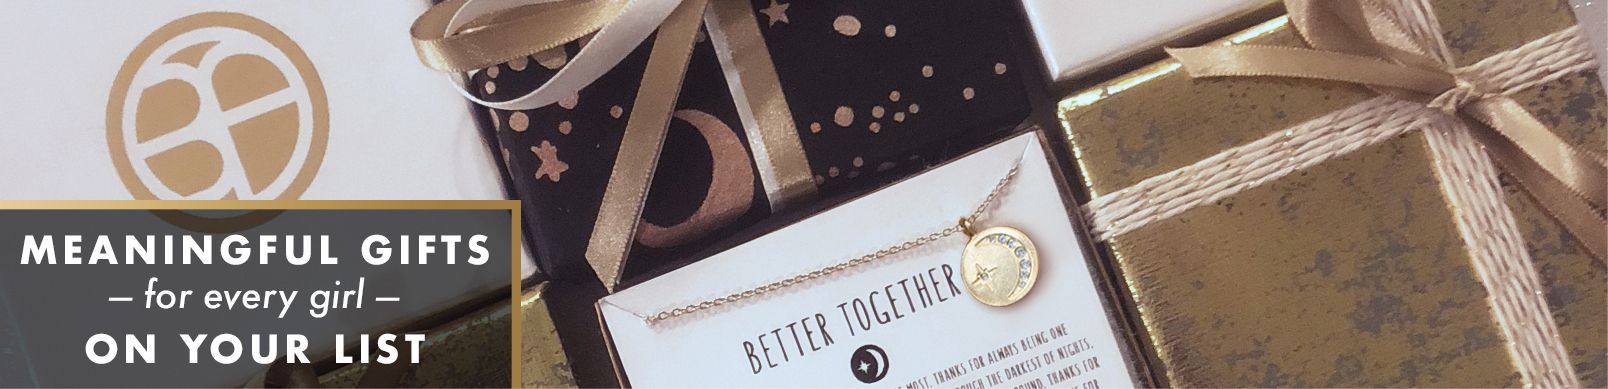 Meaningful gifts for every girl on your list